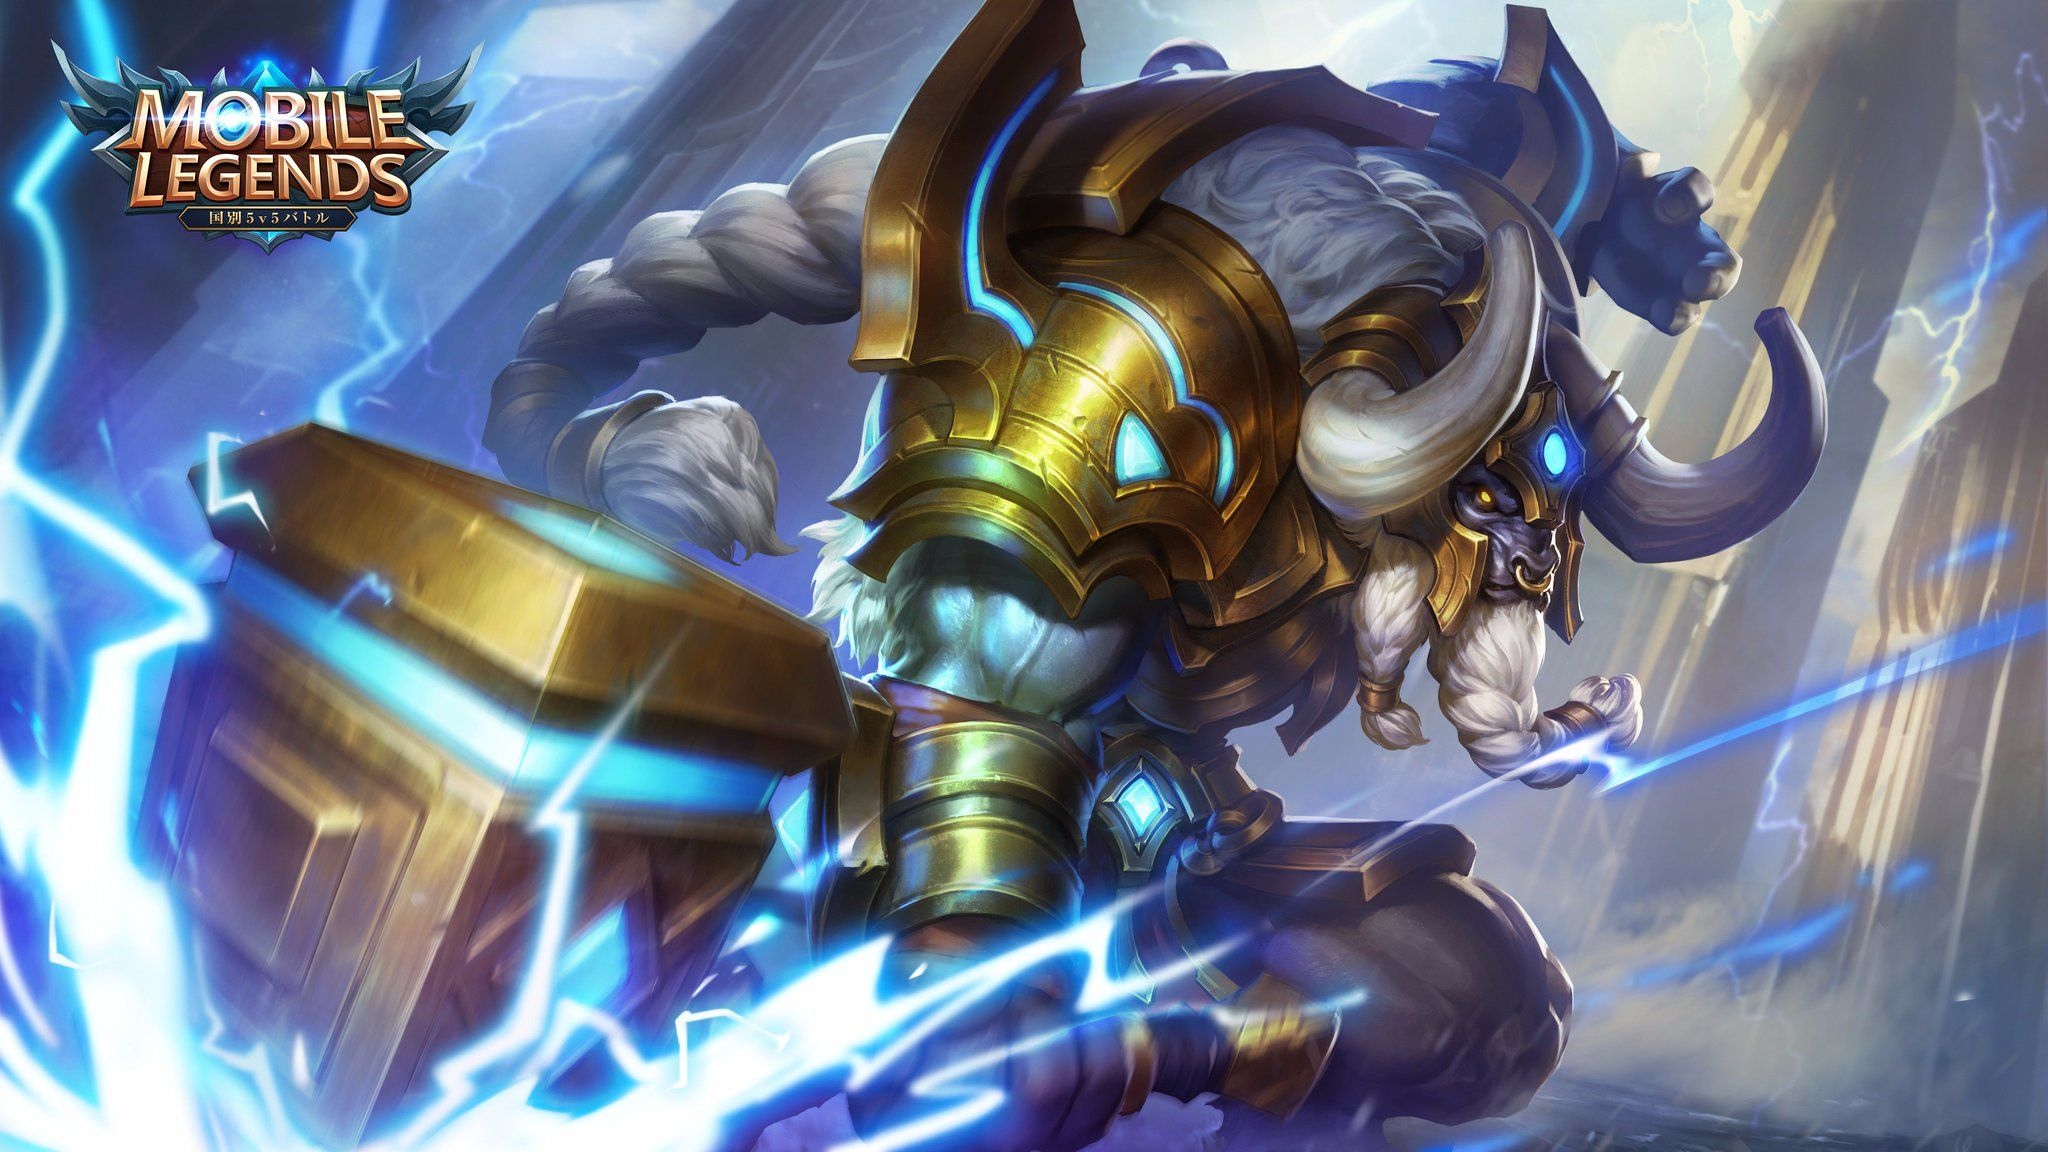 Wallpaper Mobile Legends Minotaur Taurus